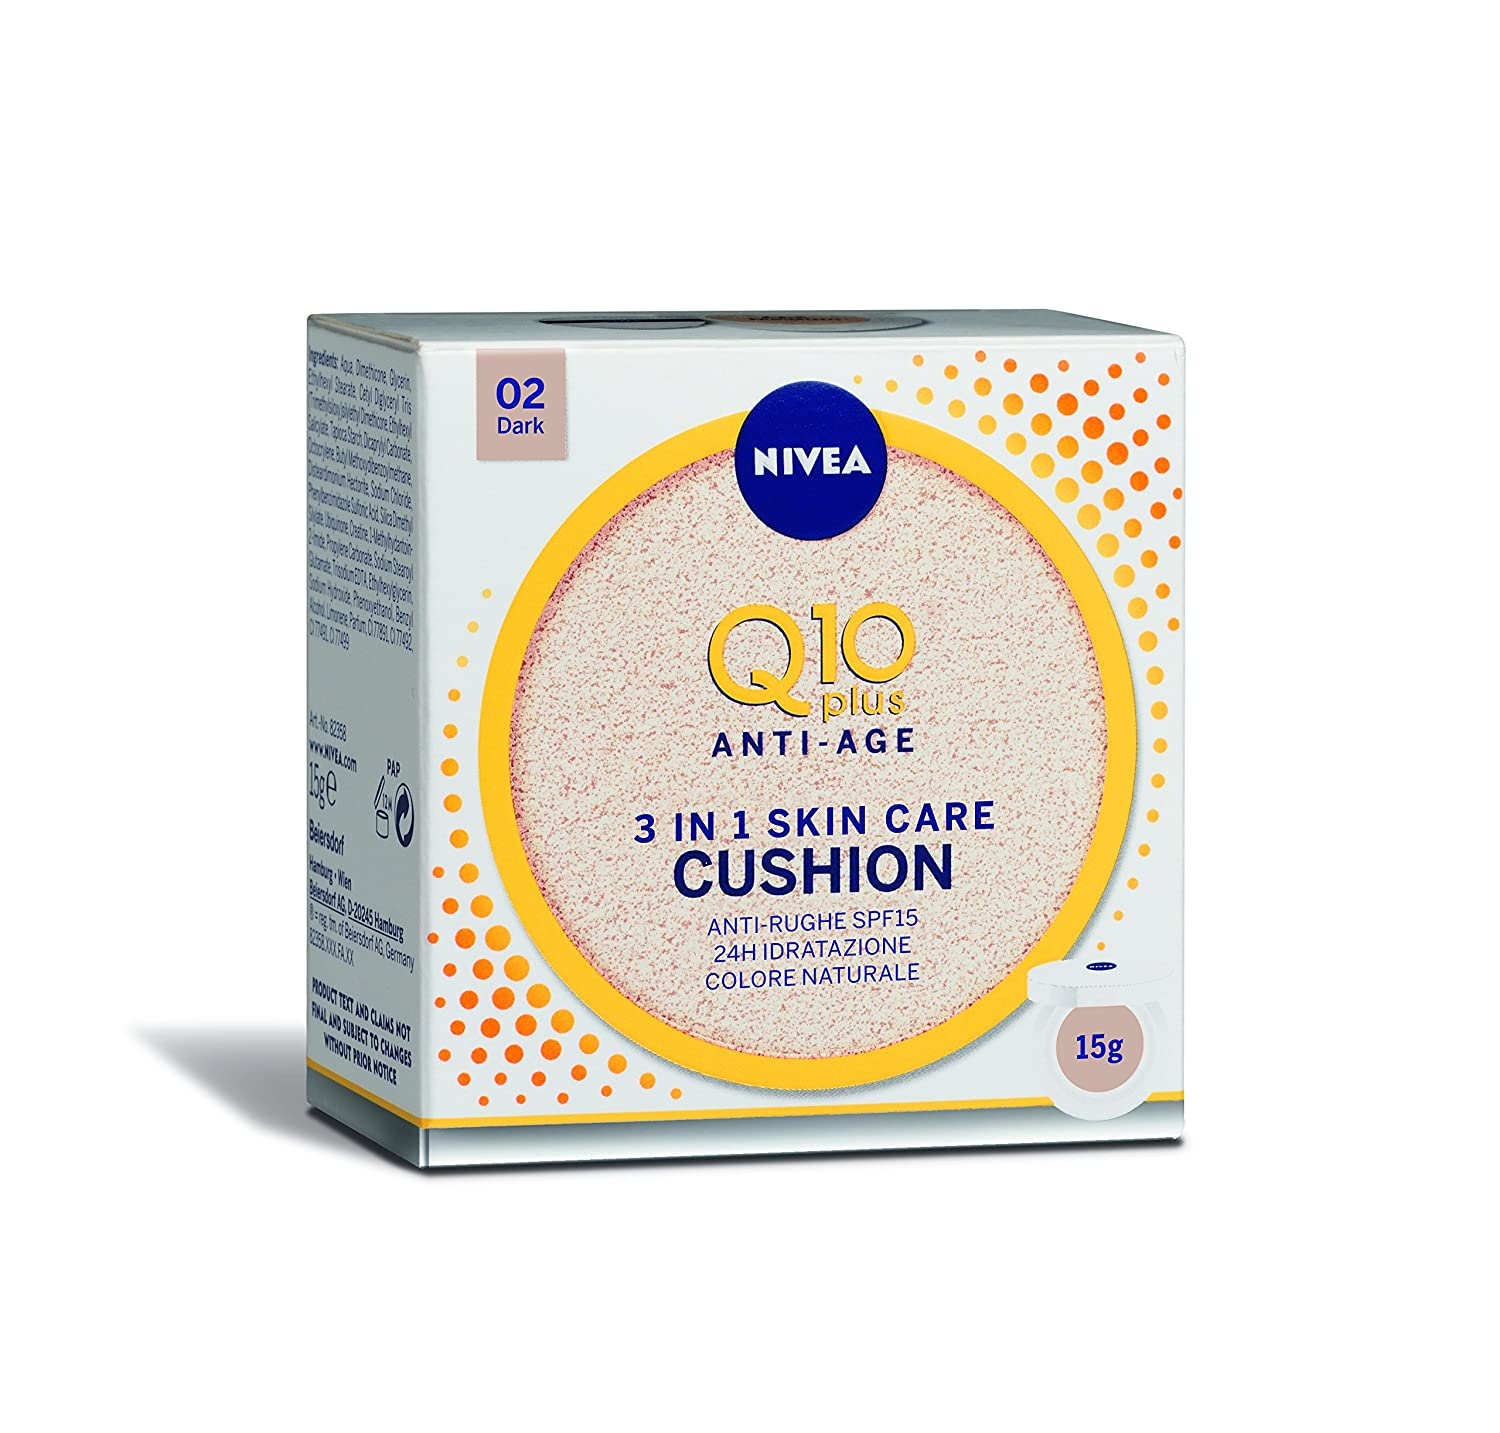 Nivea Q10 Plus Anti-Age 3 in 1 Skin Care Cushion Scuro, Colore Naturale 02 Dark